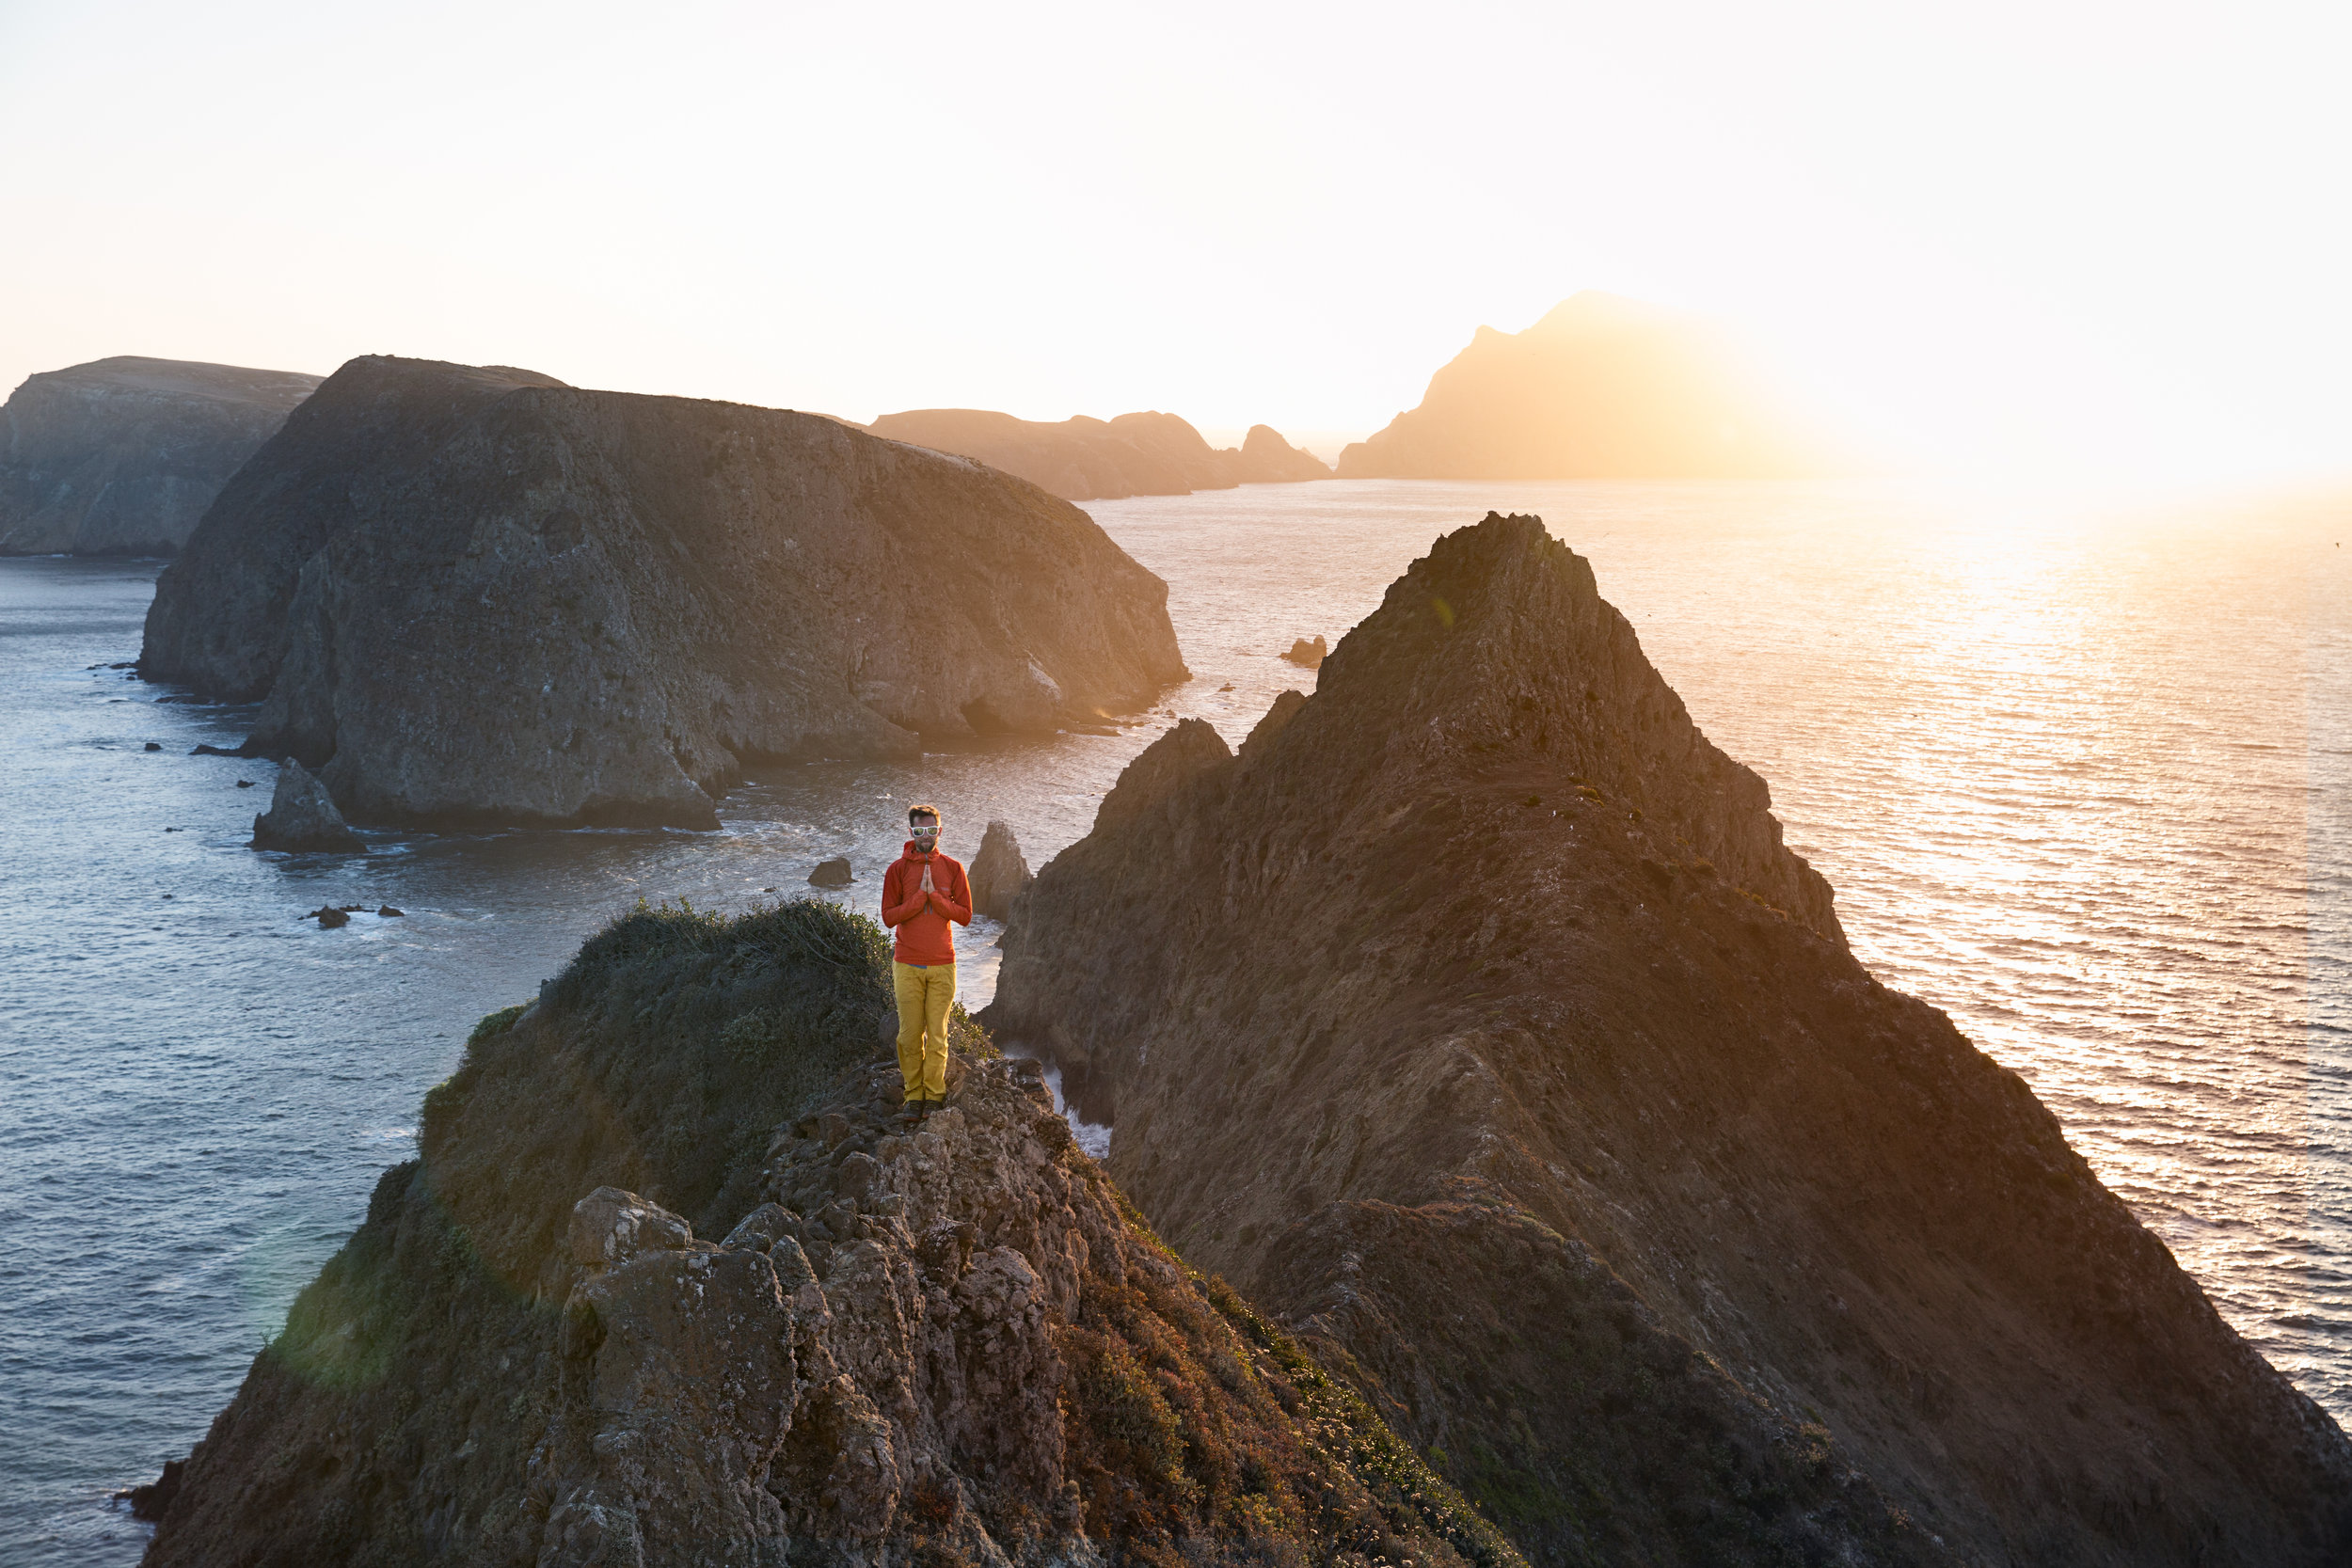 Looking back along the ridge line of Anacapa. What an amazing place..